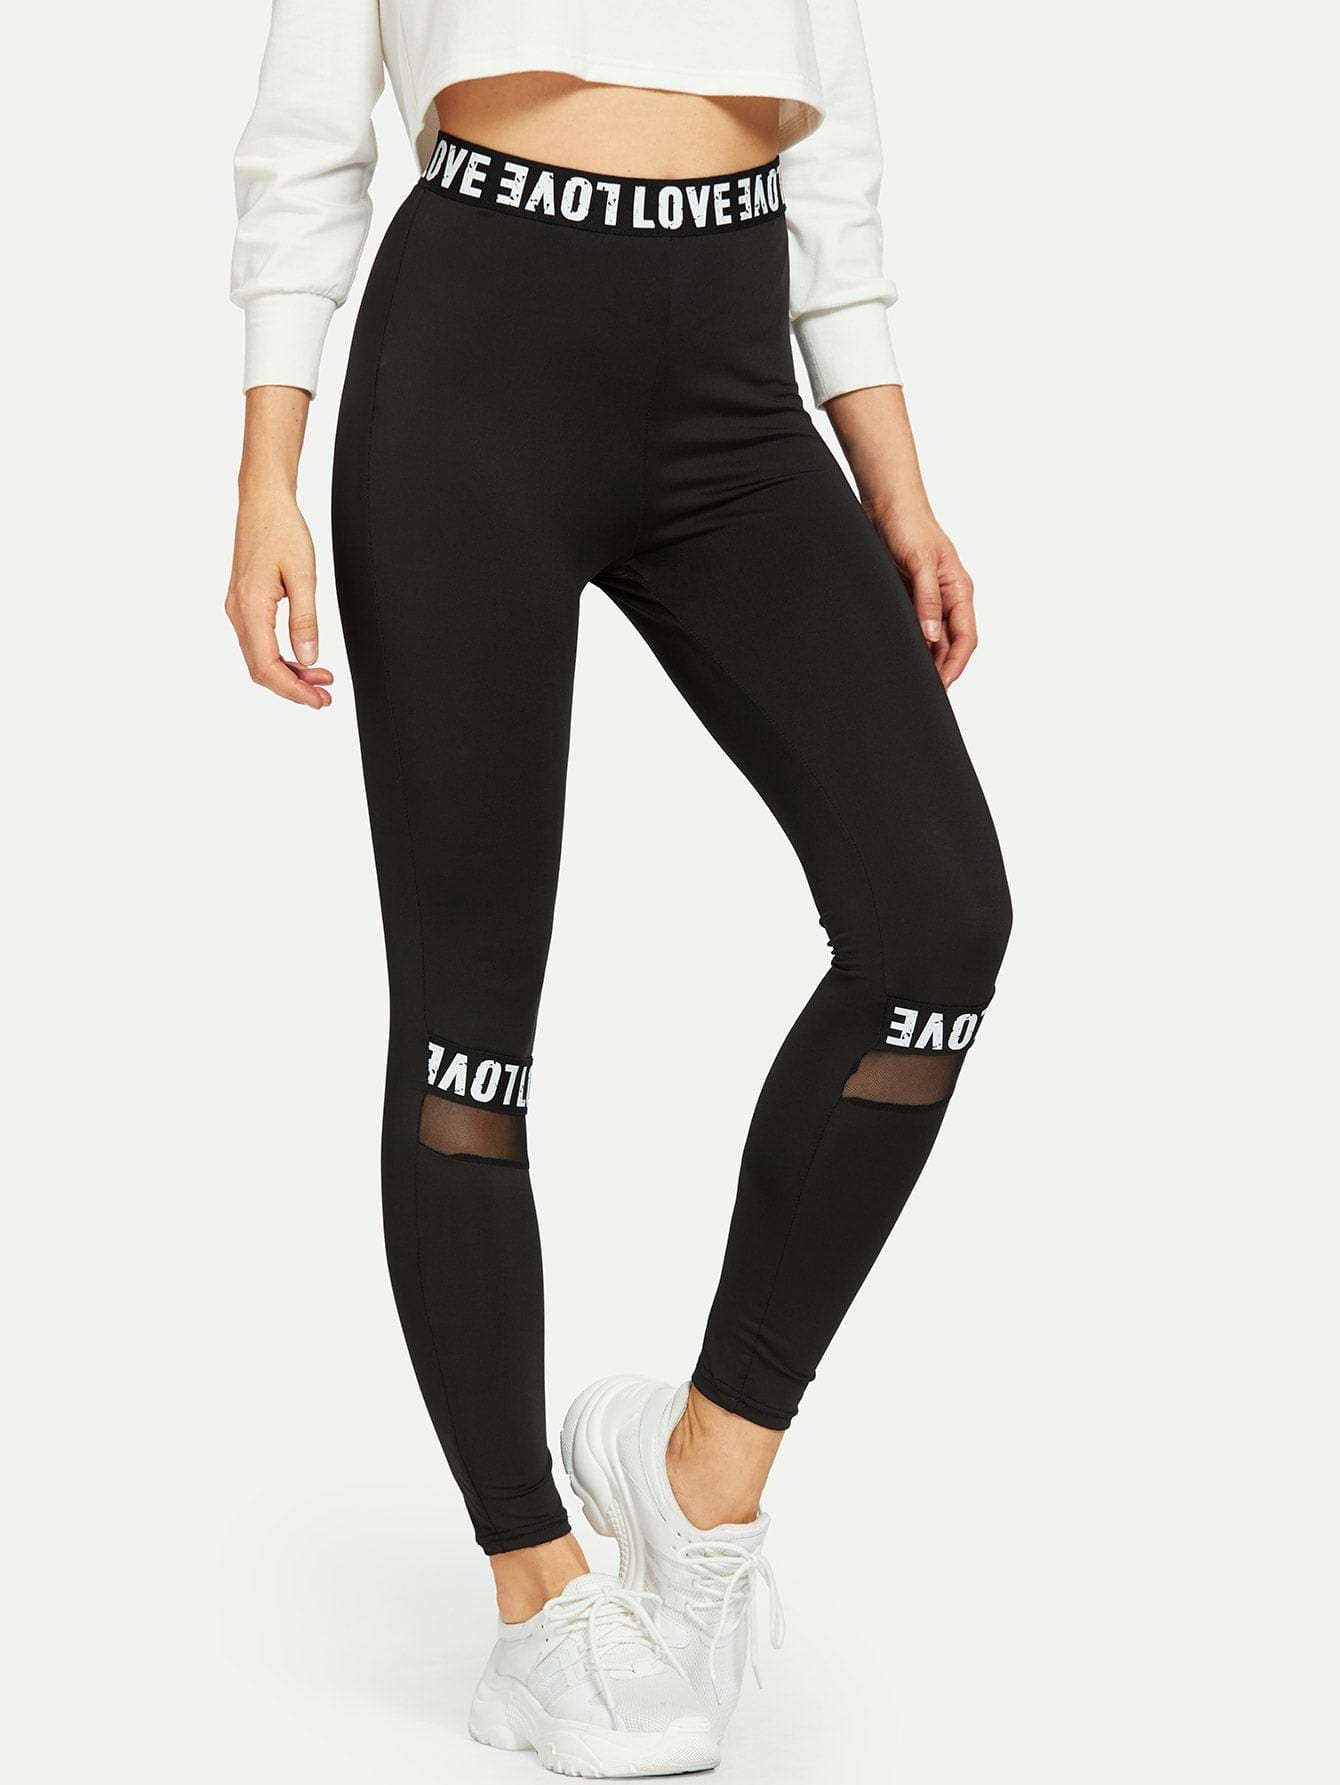 Mesh Insert Lettering Leggings - S - Fittness Leggings